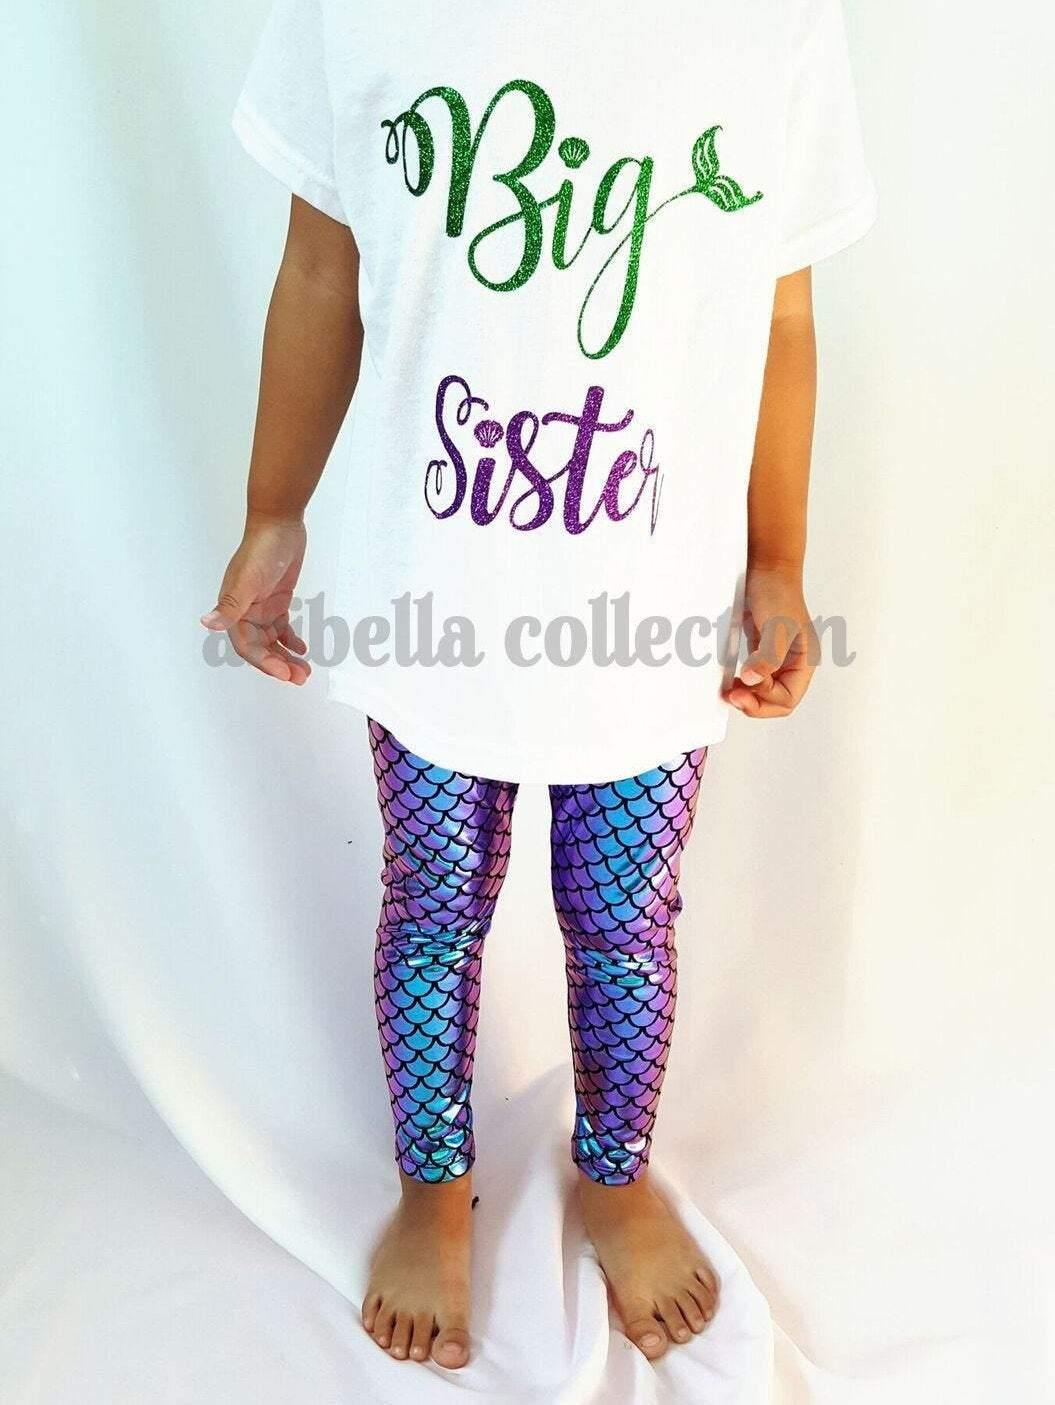 Birthday Girl Personalized Bodysuit or T-shirt, Legging, & Bow Outfit - Aribella Collection, Inc.